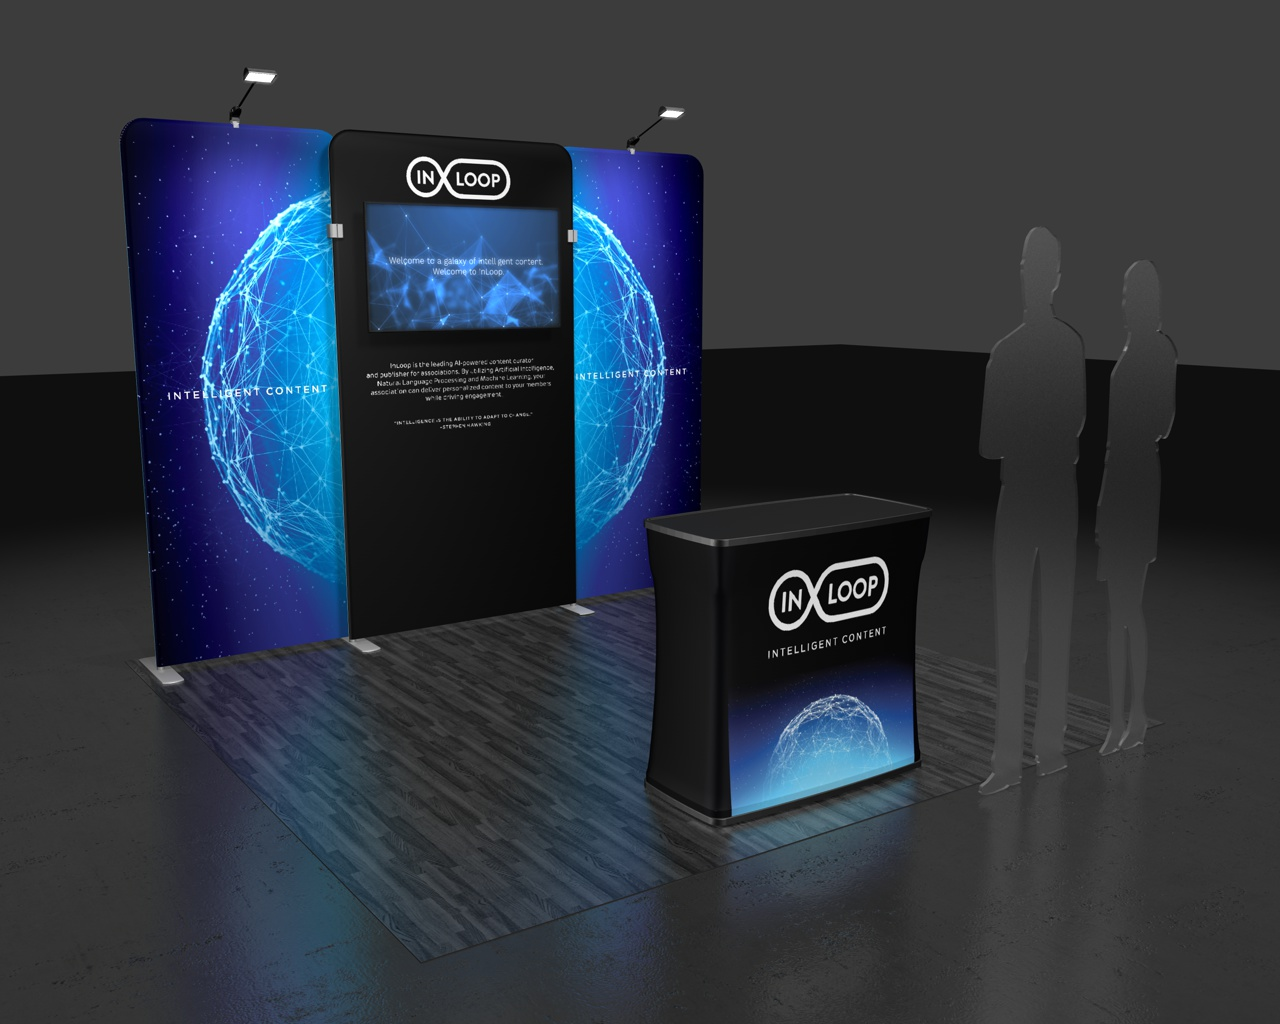 This Waveline Media 10.09 tension fabric display designed for InLoop offers a a minimalist design maintaining a limited color palette and visually interesting design elements.